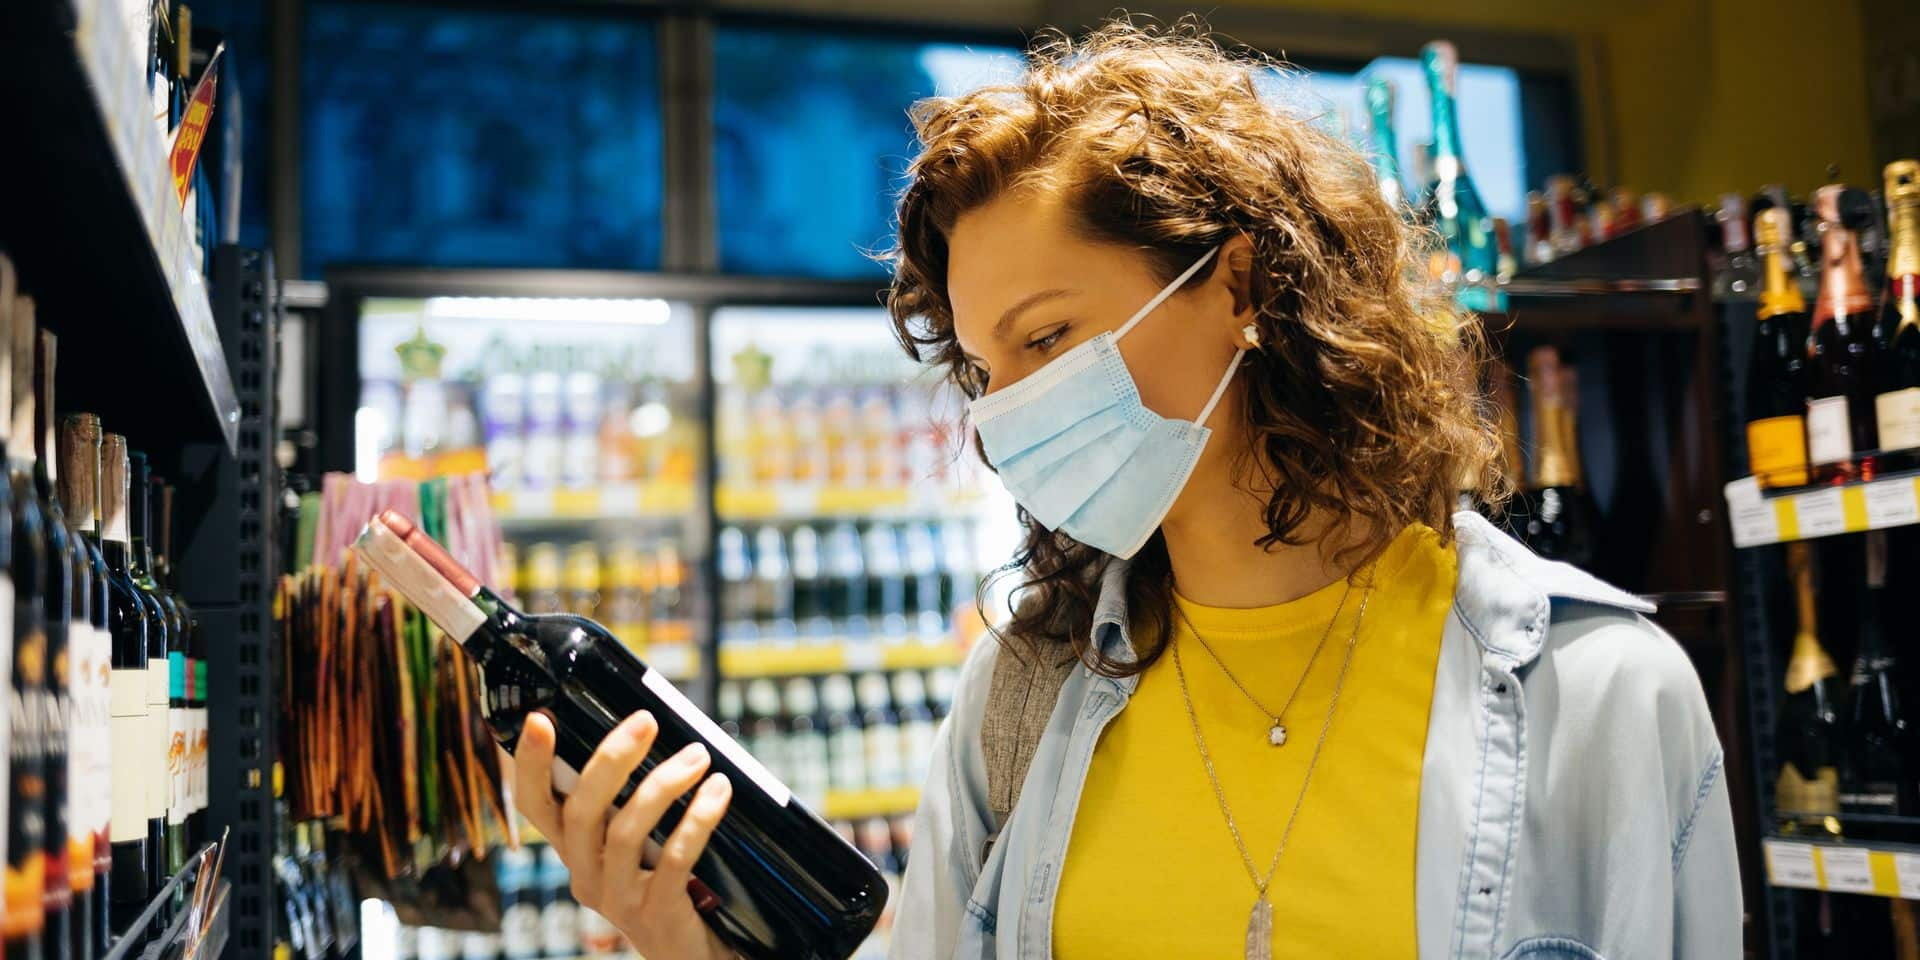 Young,Woman,Wearing,Protective,Face,Mask,Chooses,Wine,In,Grocery